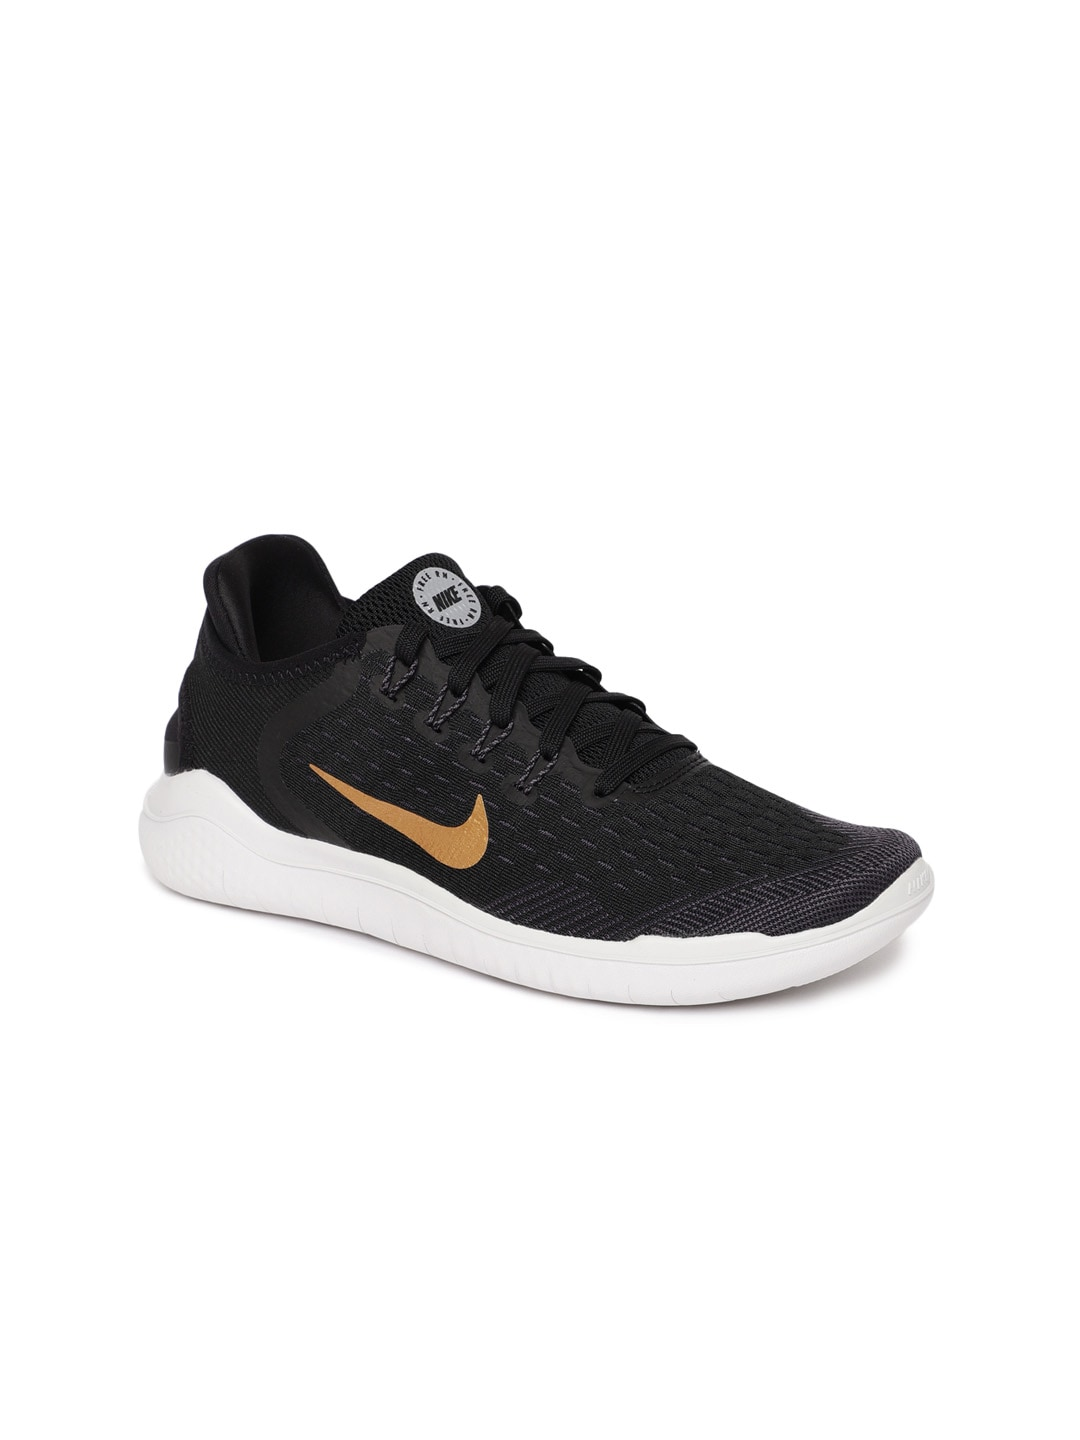 2145f6aceb0c Nike Free Running Shoes - Buy Nike Free Running Shoes online in India